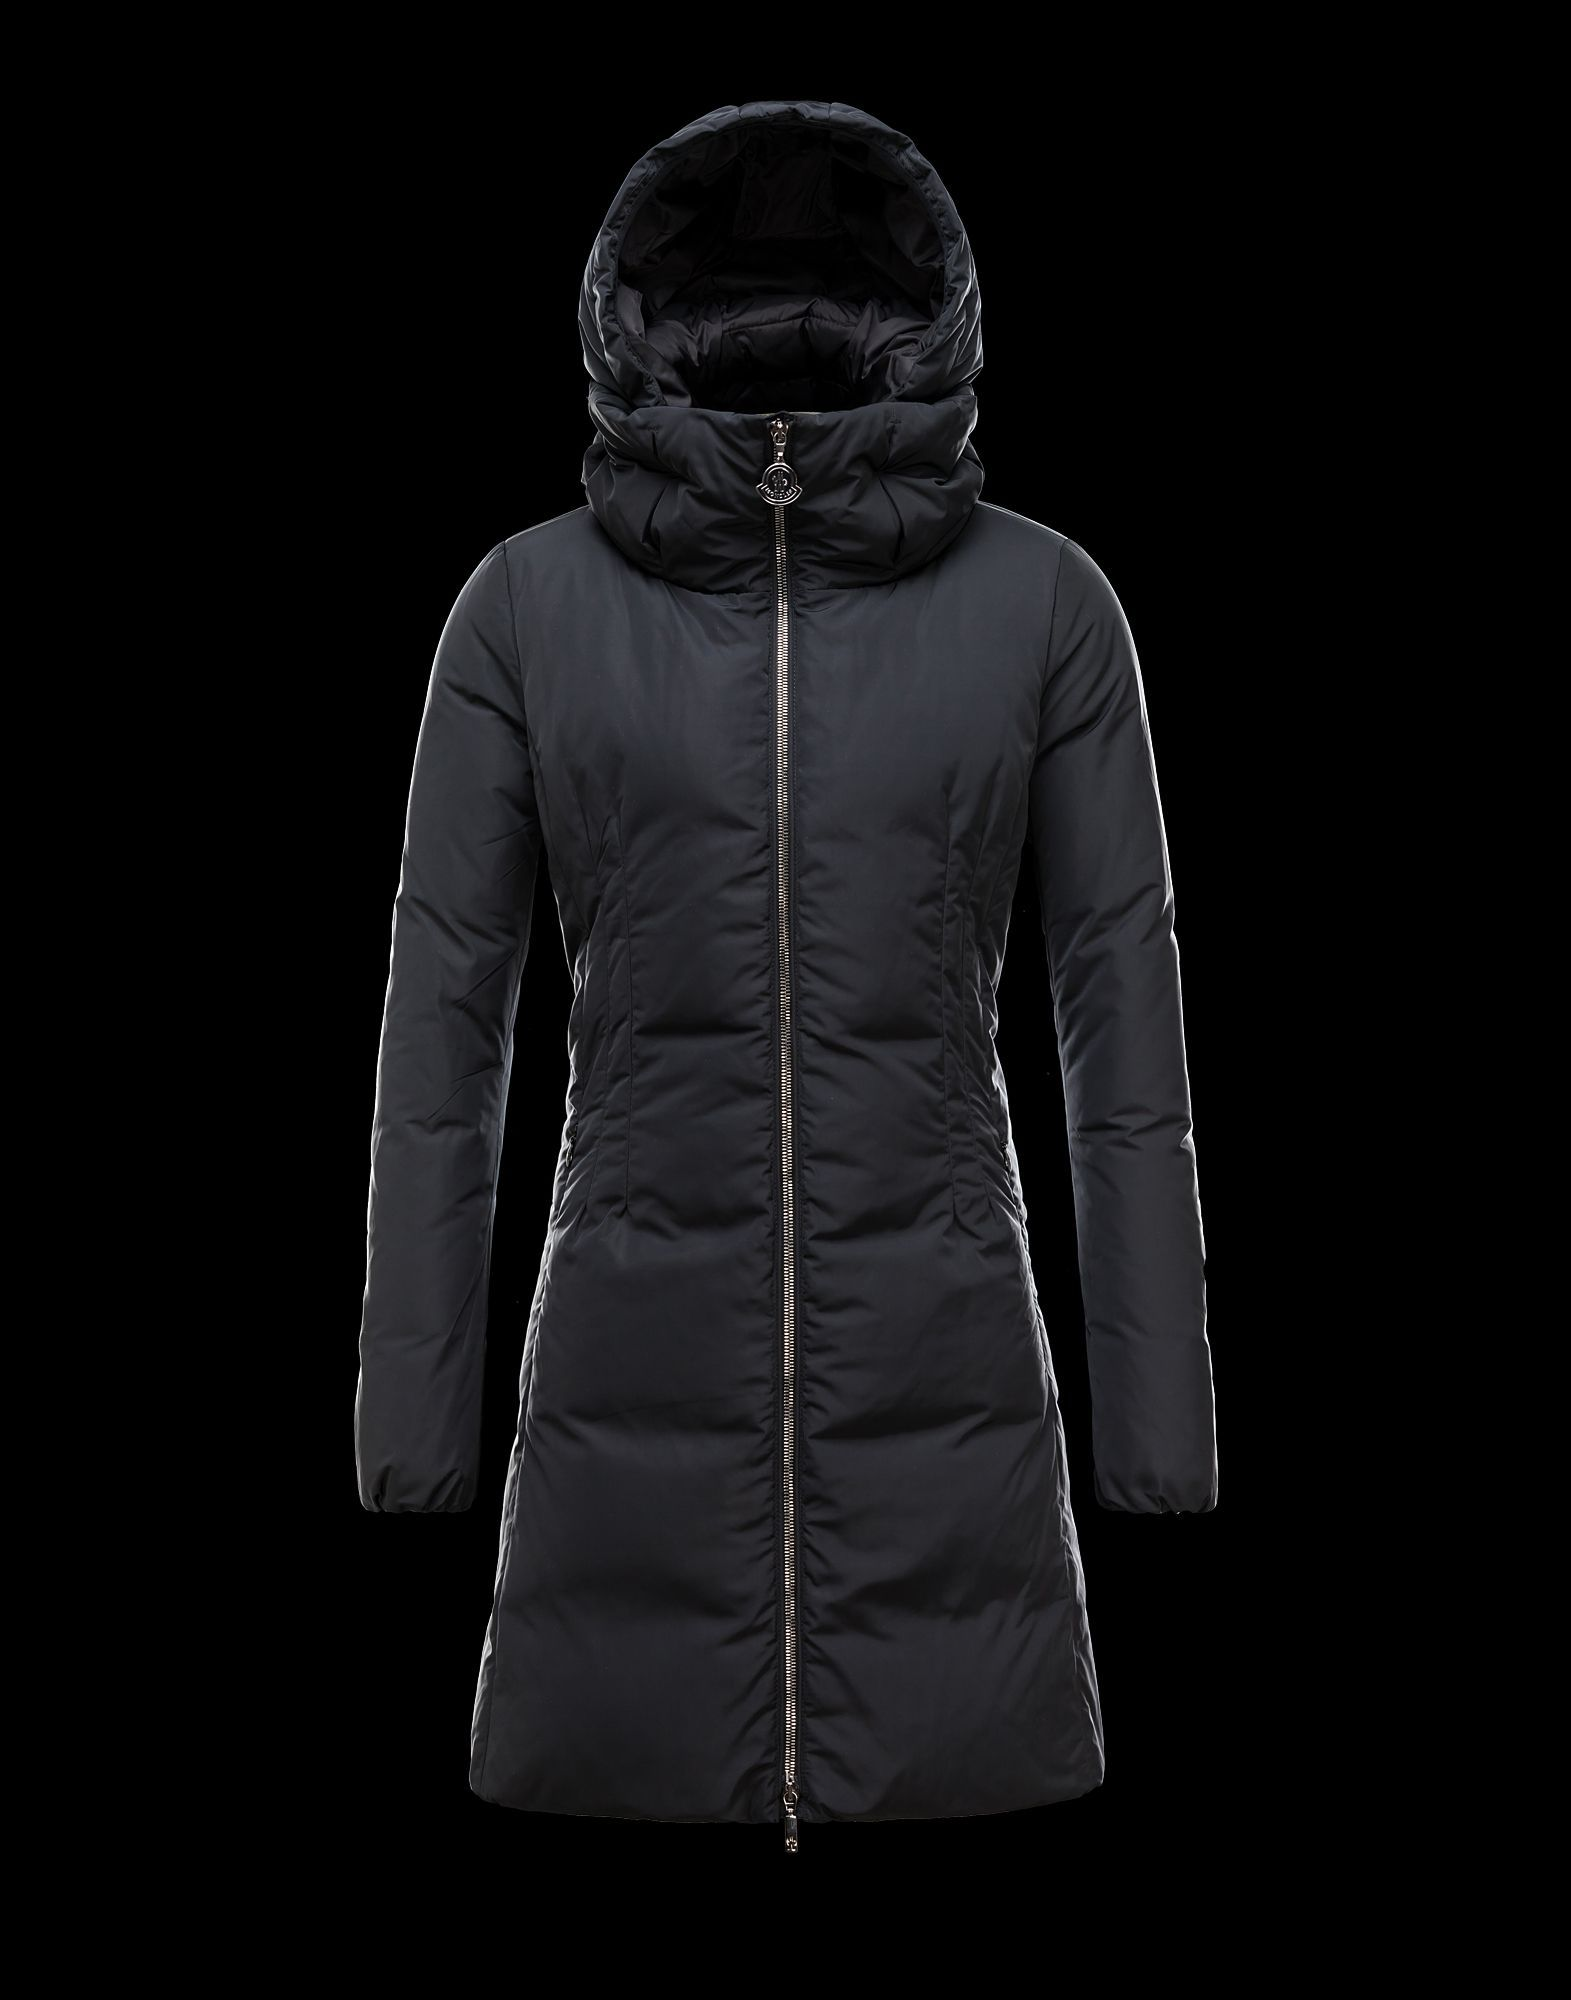 Clothing and down jackets for men, women and kids